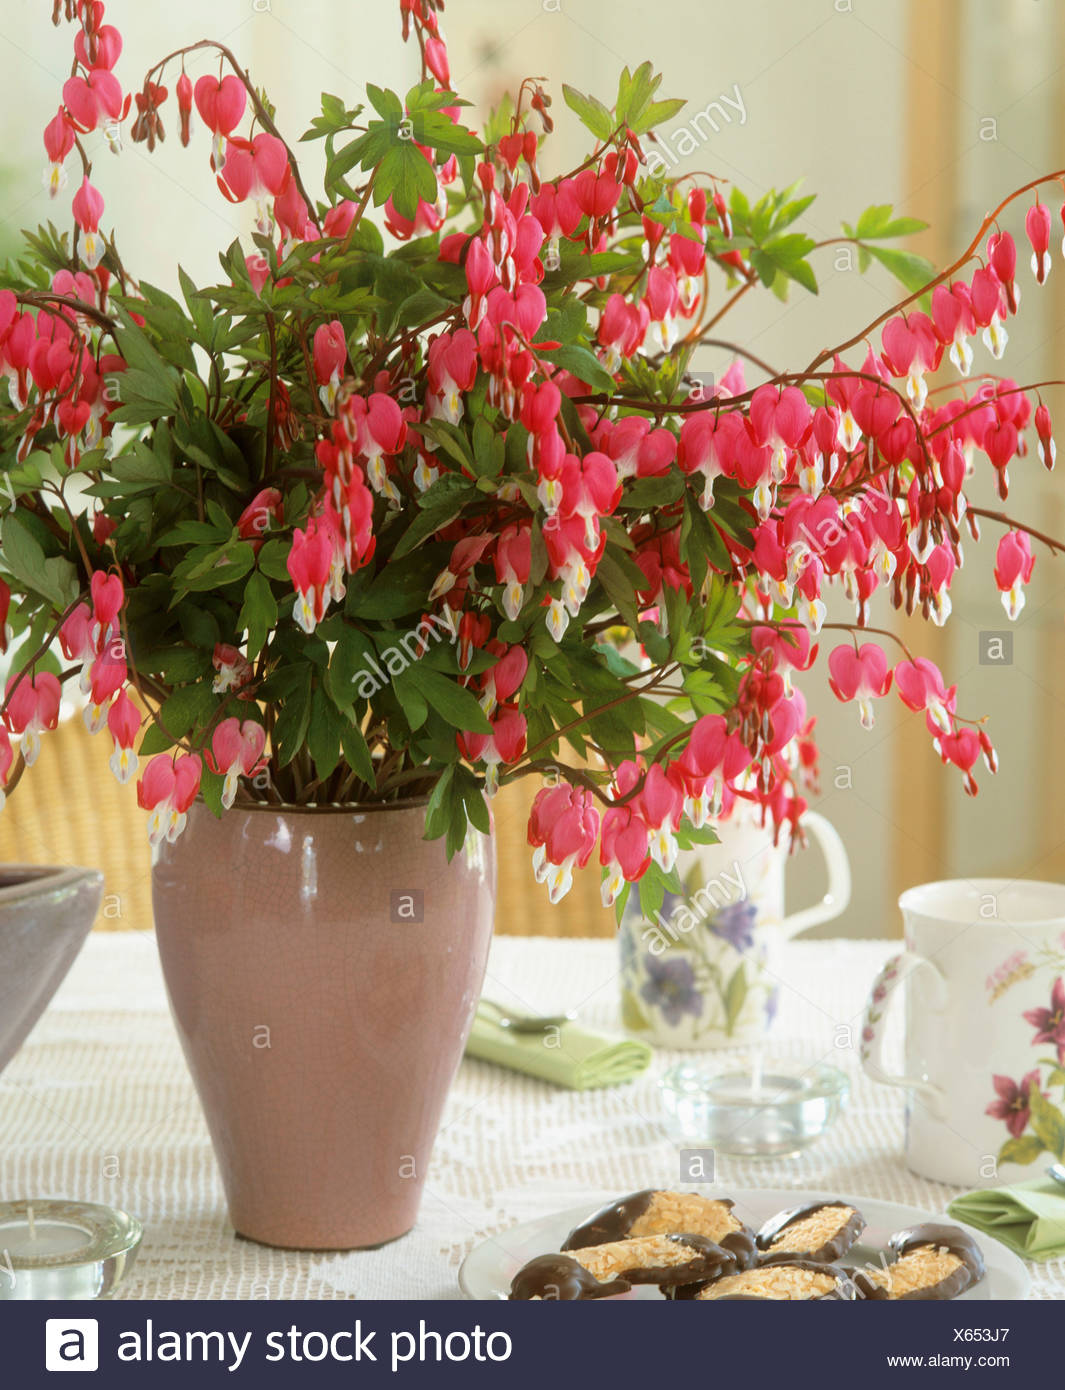 Bleeding heart in vase stock photo 279166447 alamy bleeding heart in vase izmirmasajfo